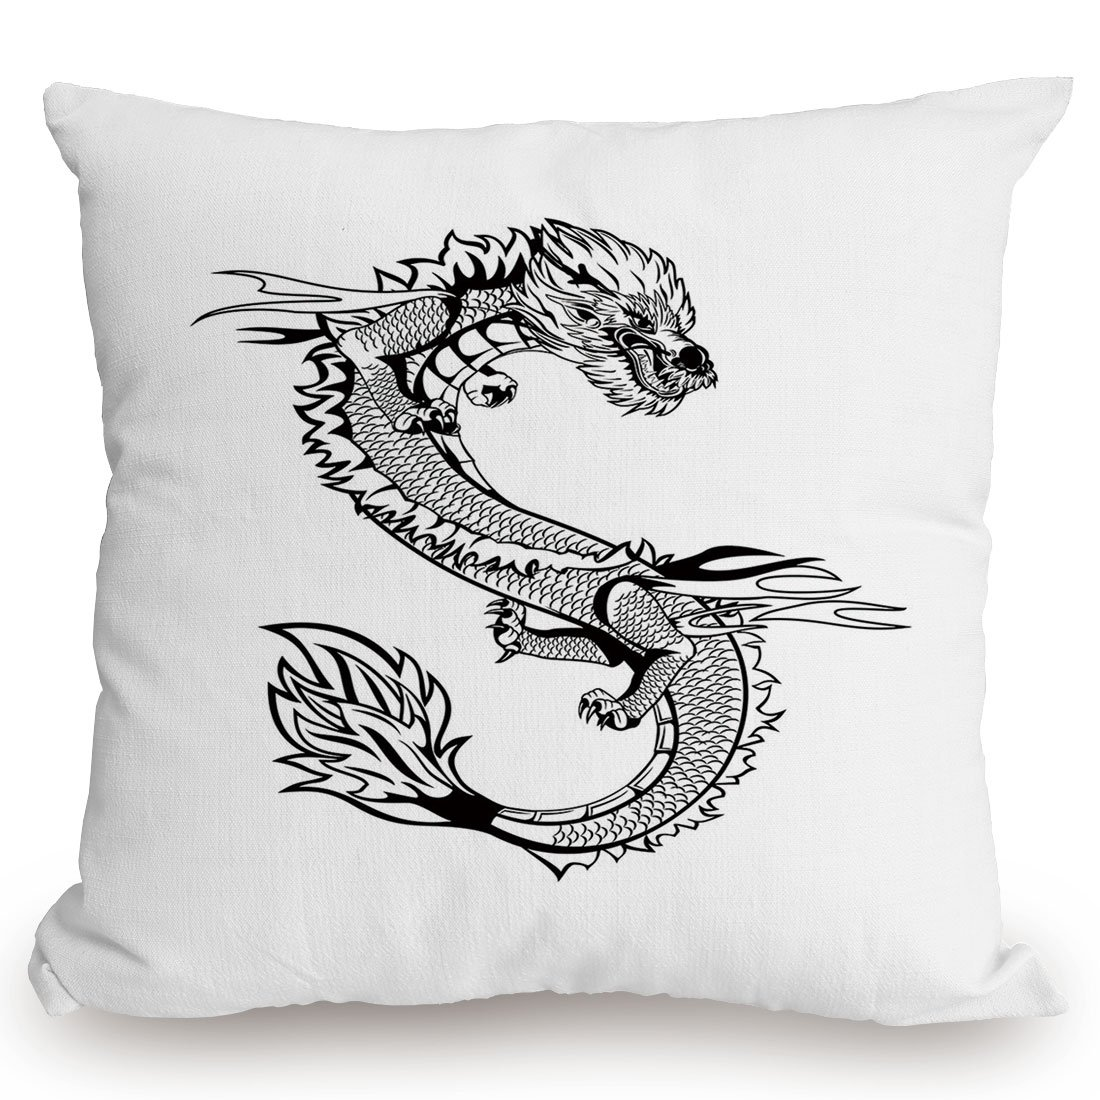 Throw Pillow Cushion Cover,Japanese Dragon,Ancient Far Eastern Culture Esoteric Magical Monster Symbolic Thai Style Decorative,Black White,Decorative Square Accent Pillow Case by KissCase